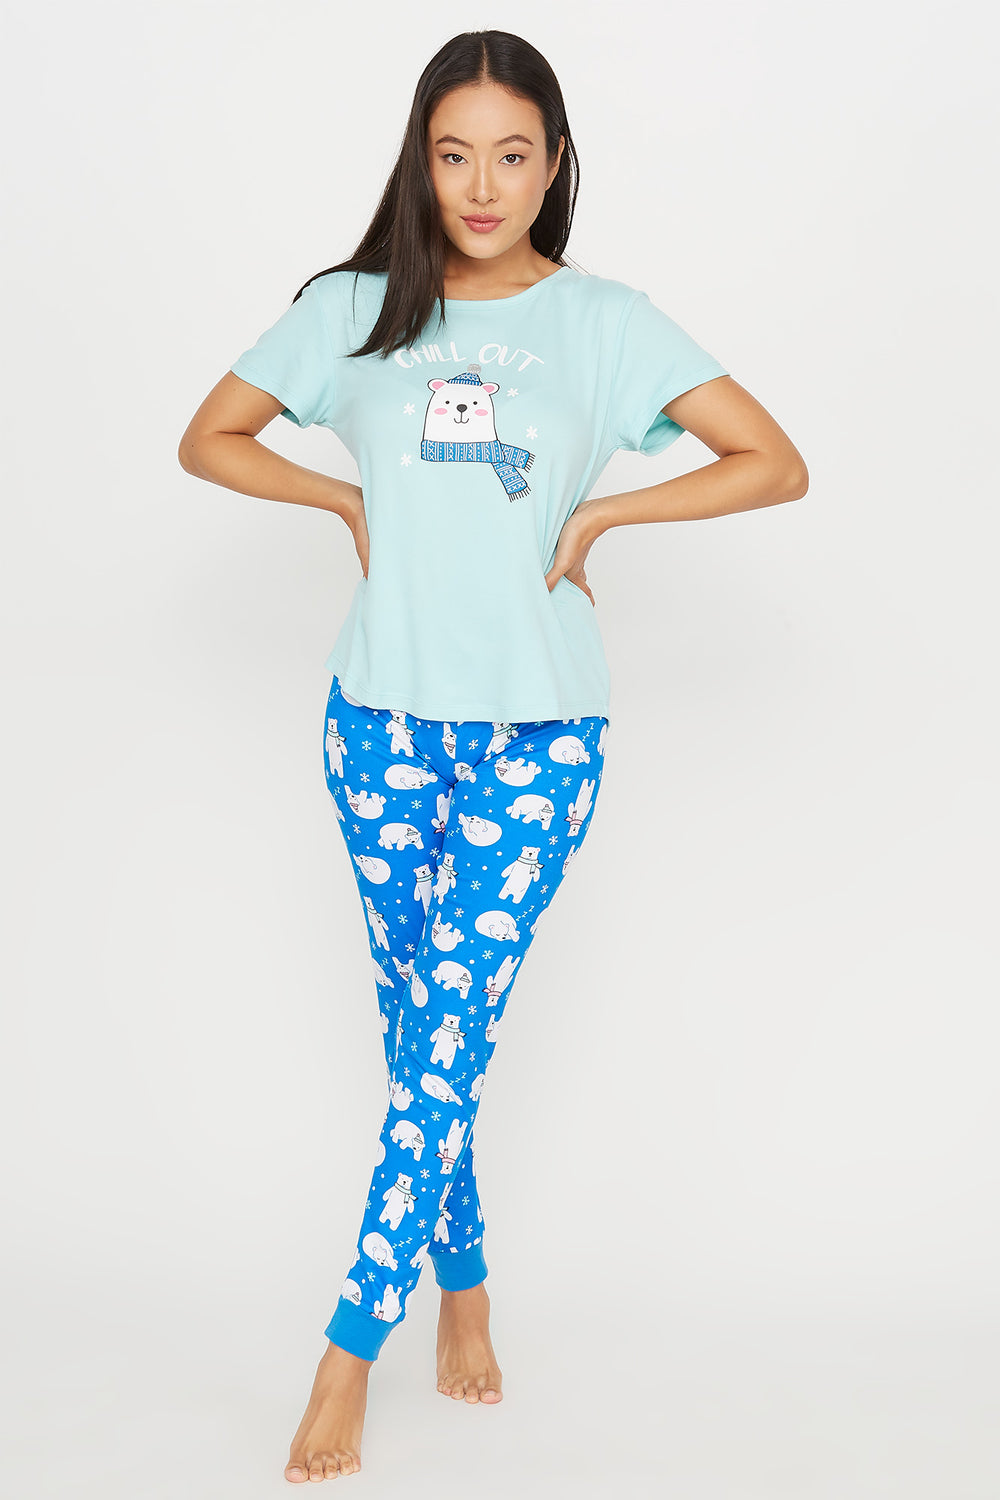 Soft Graphic Chill Out T-Shirt and Printed Legging Pajama Set Aqua